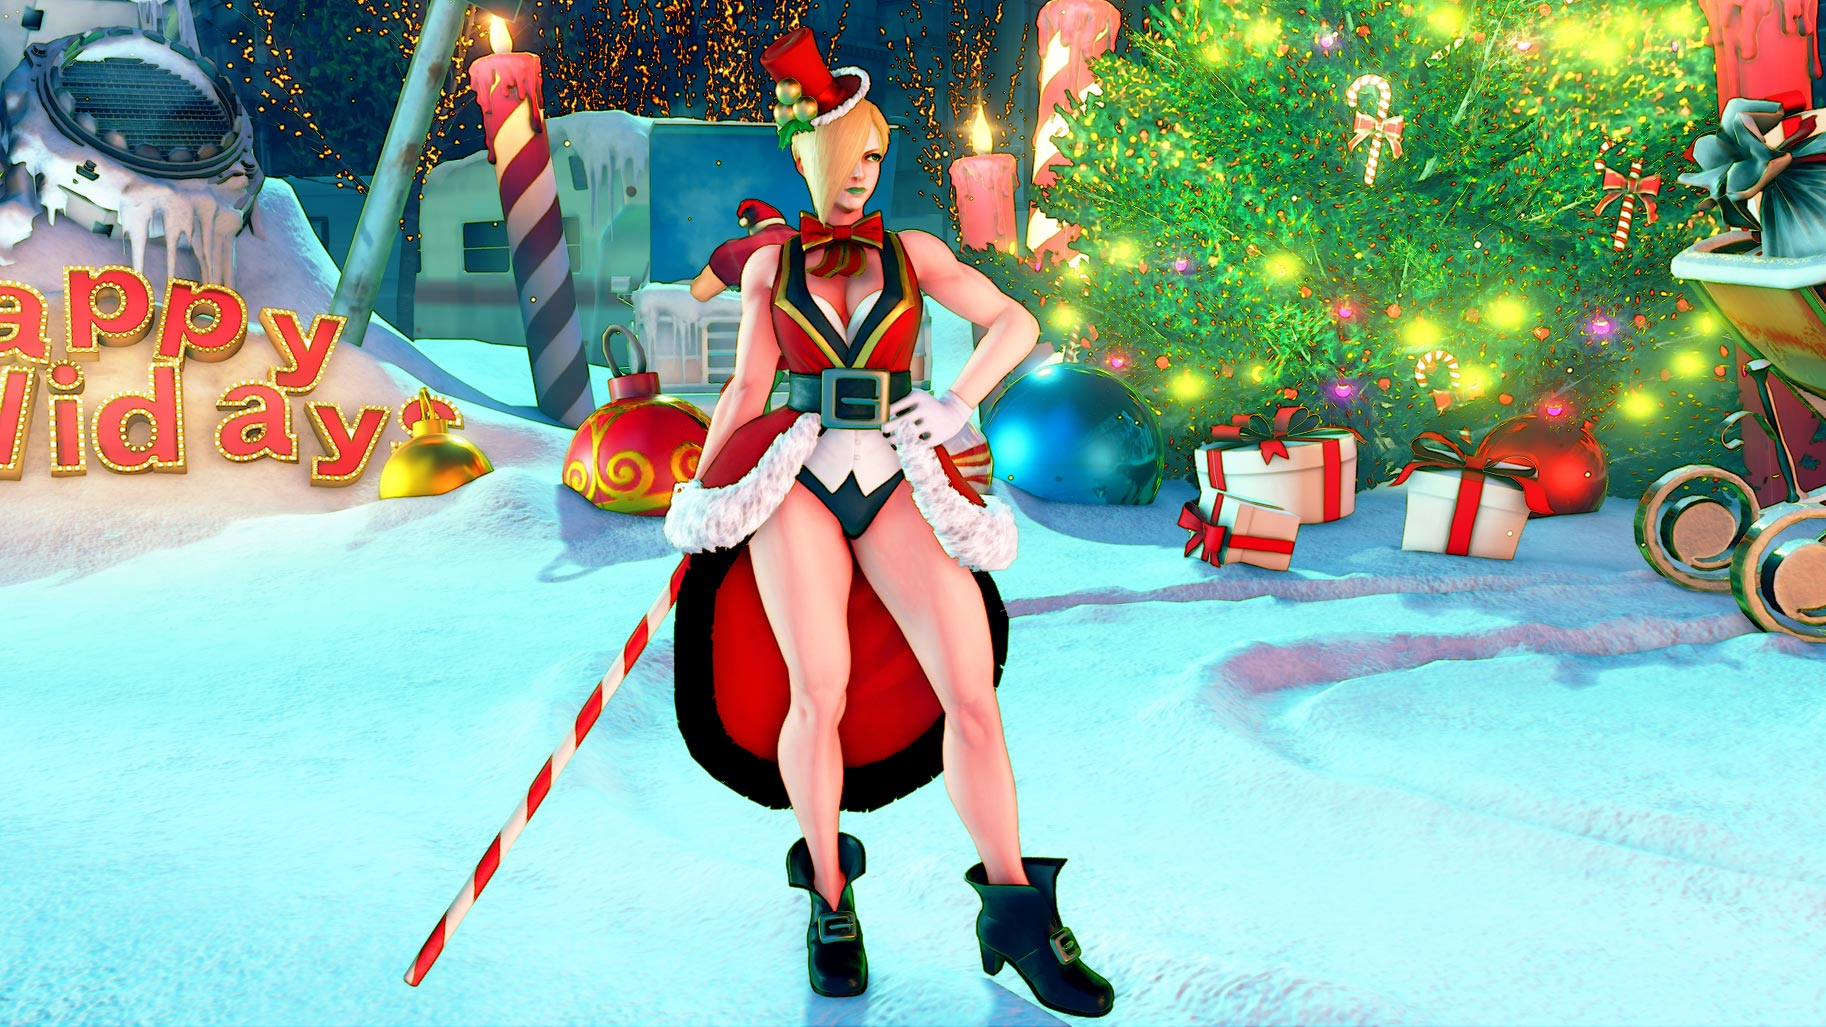 New Street Fighter 5 holiday costumes 10 out of 12 image gallery